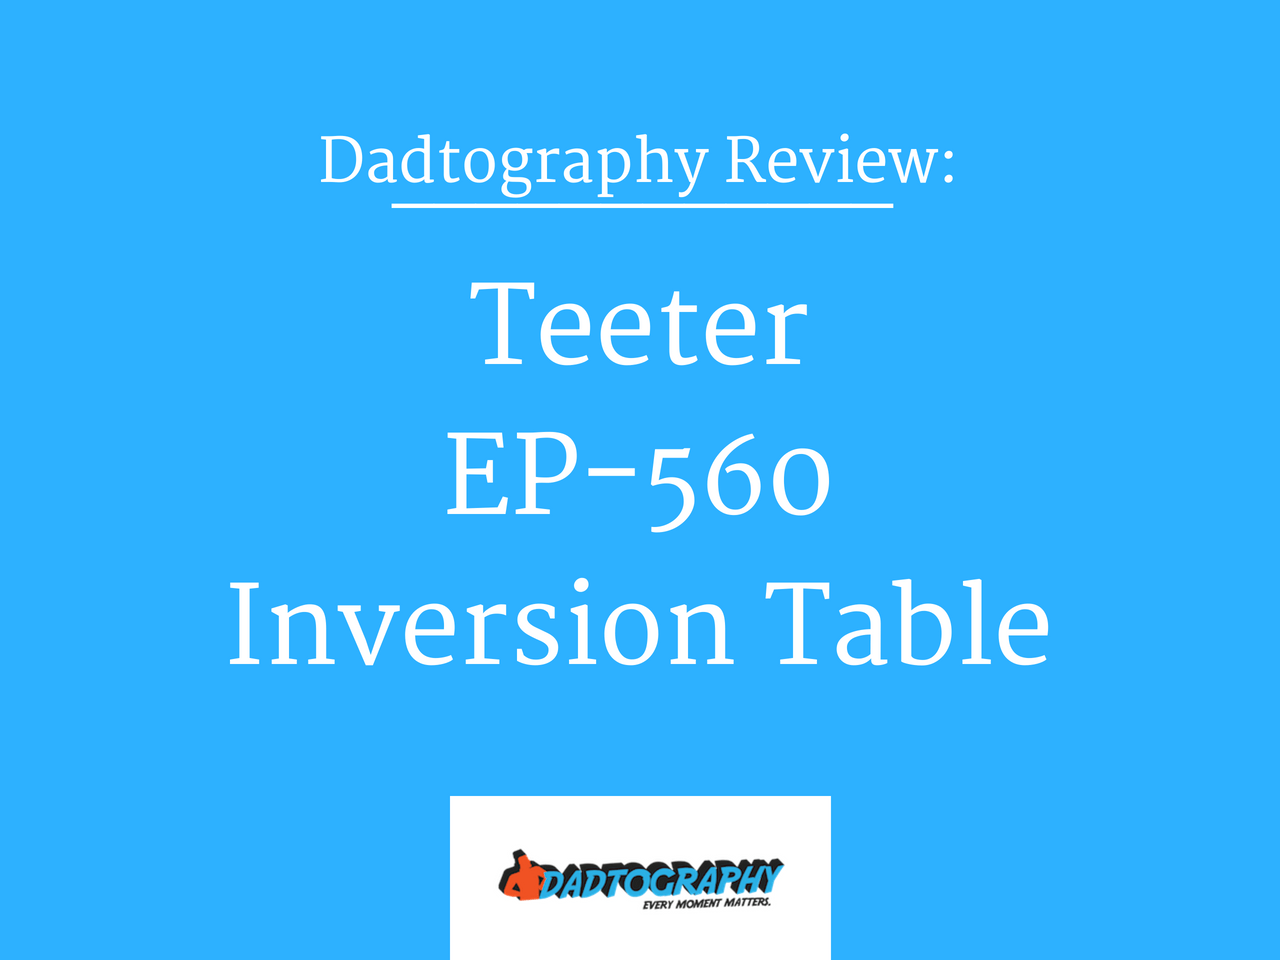 Teeter EP-560 Inversion Table Review